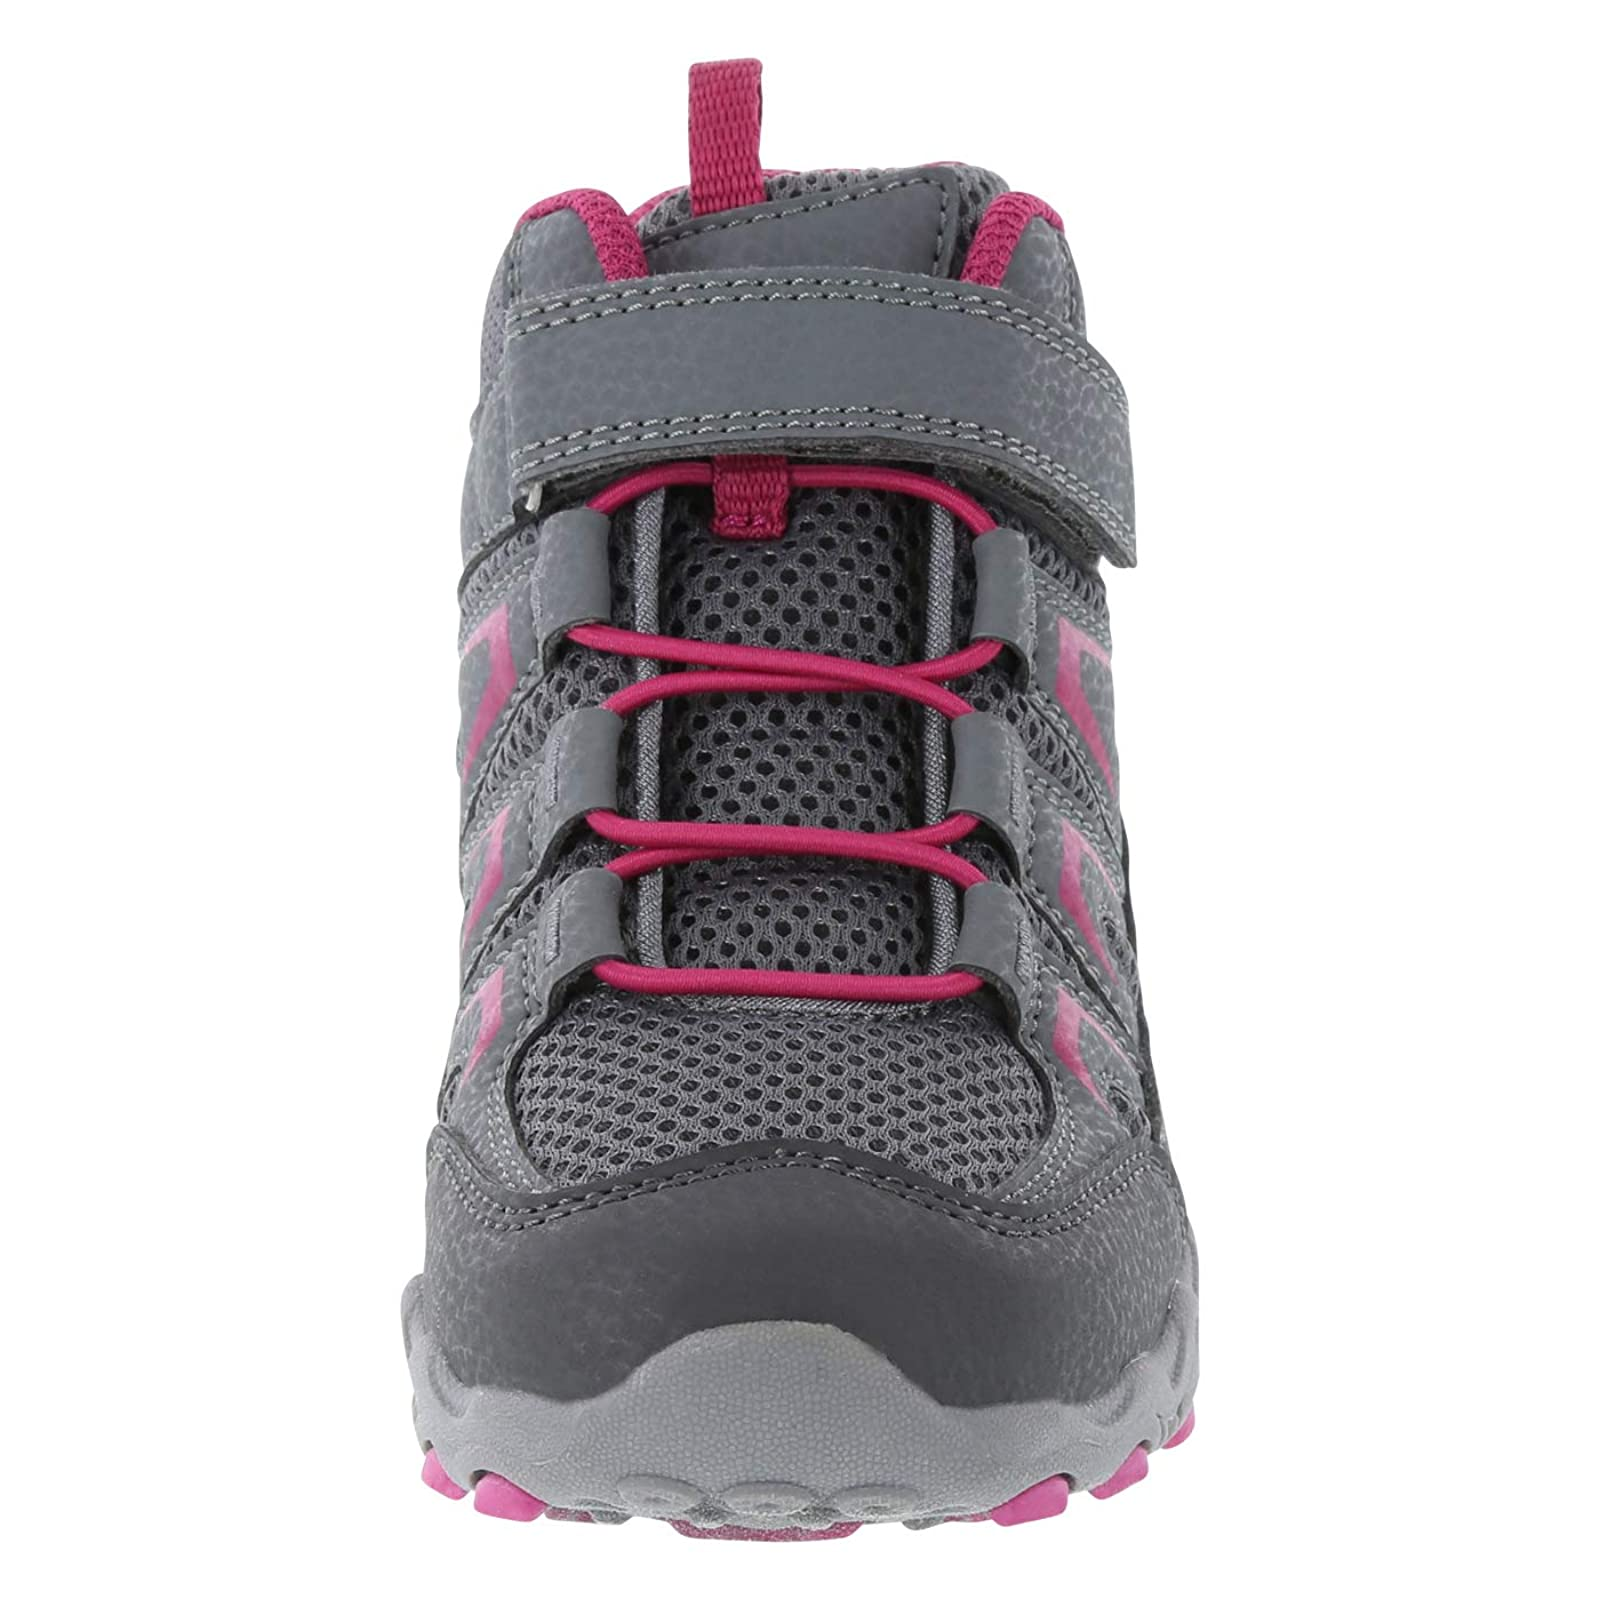 Rugged Outback Grey Pink Girls' Winona Hiking 178641130 - 3